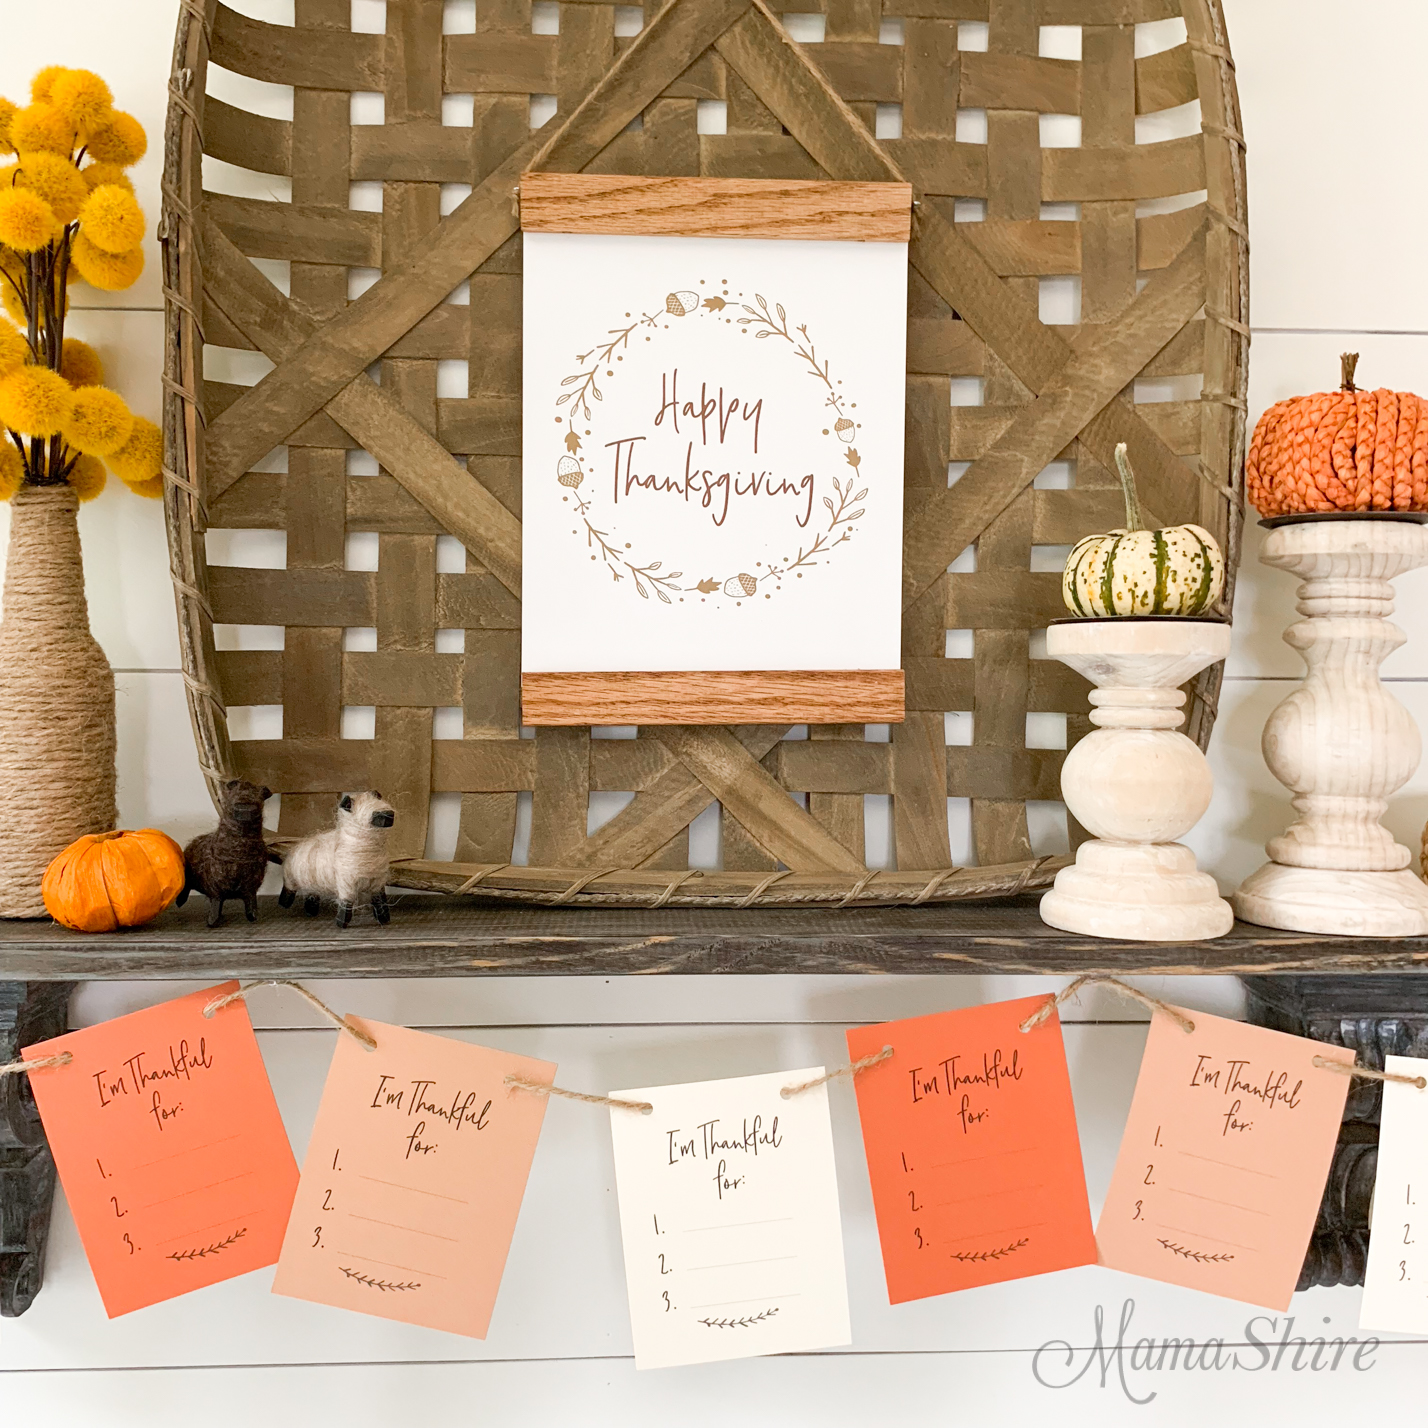 Free printables to decorate for Thanksgiving.